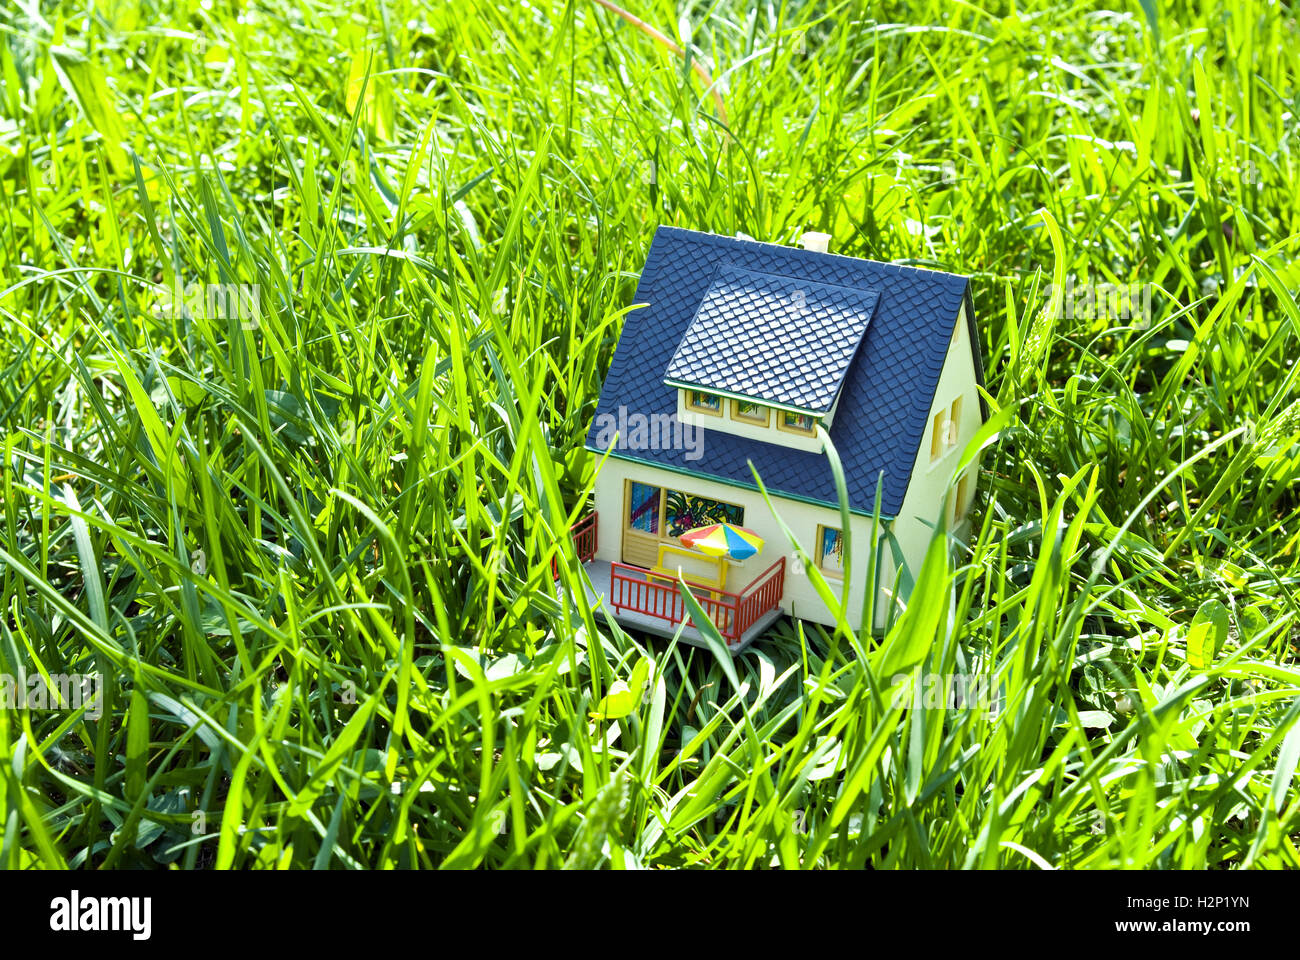 house on grass - Stock Image